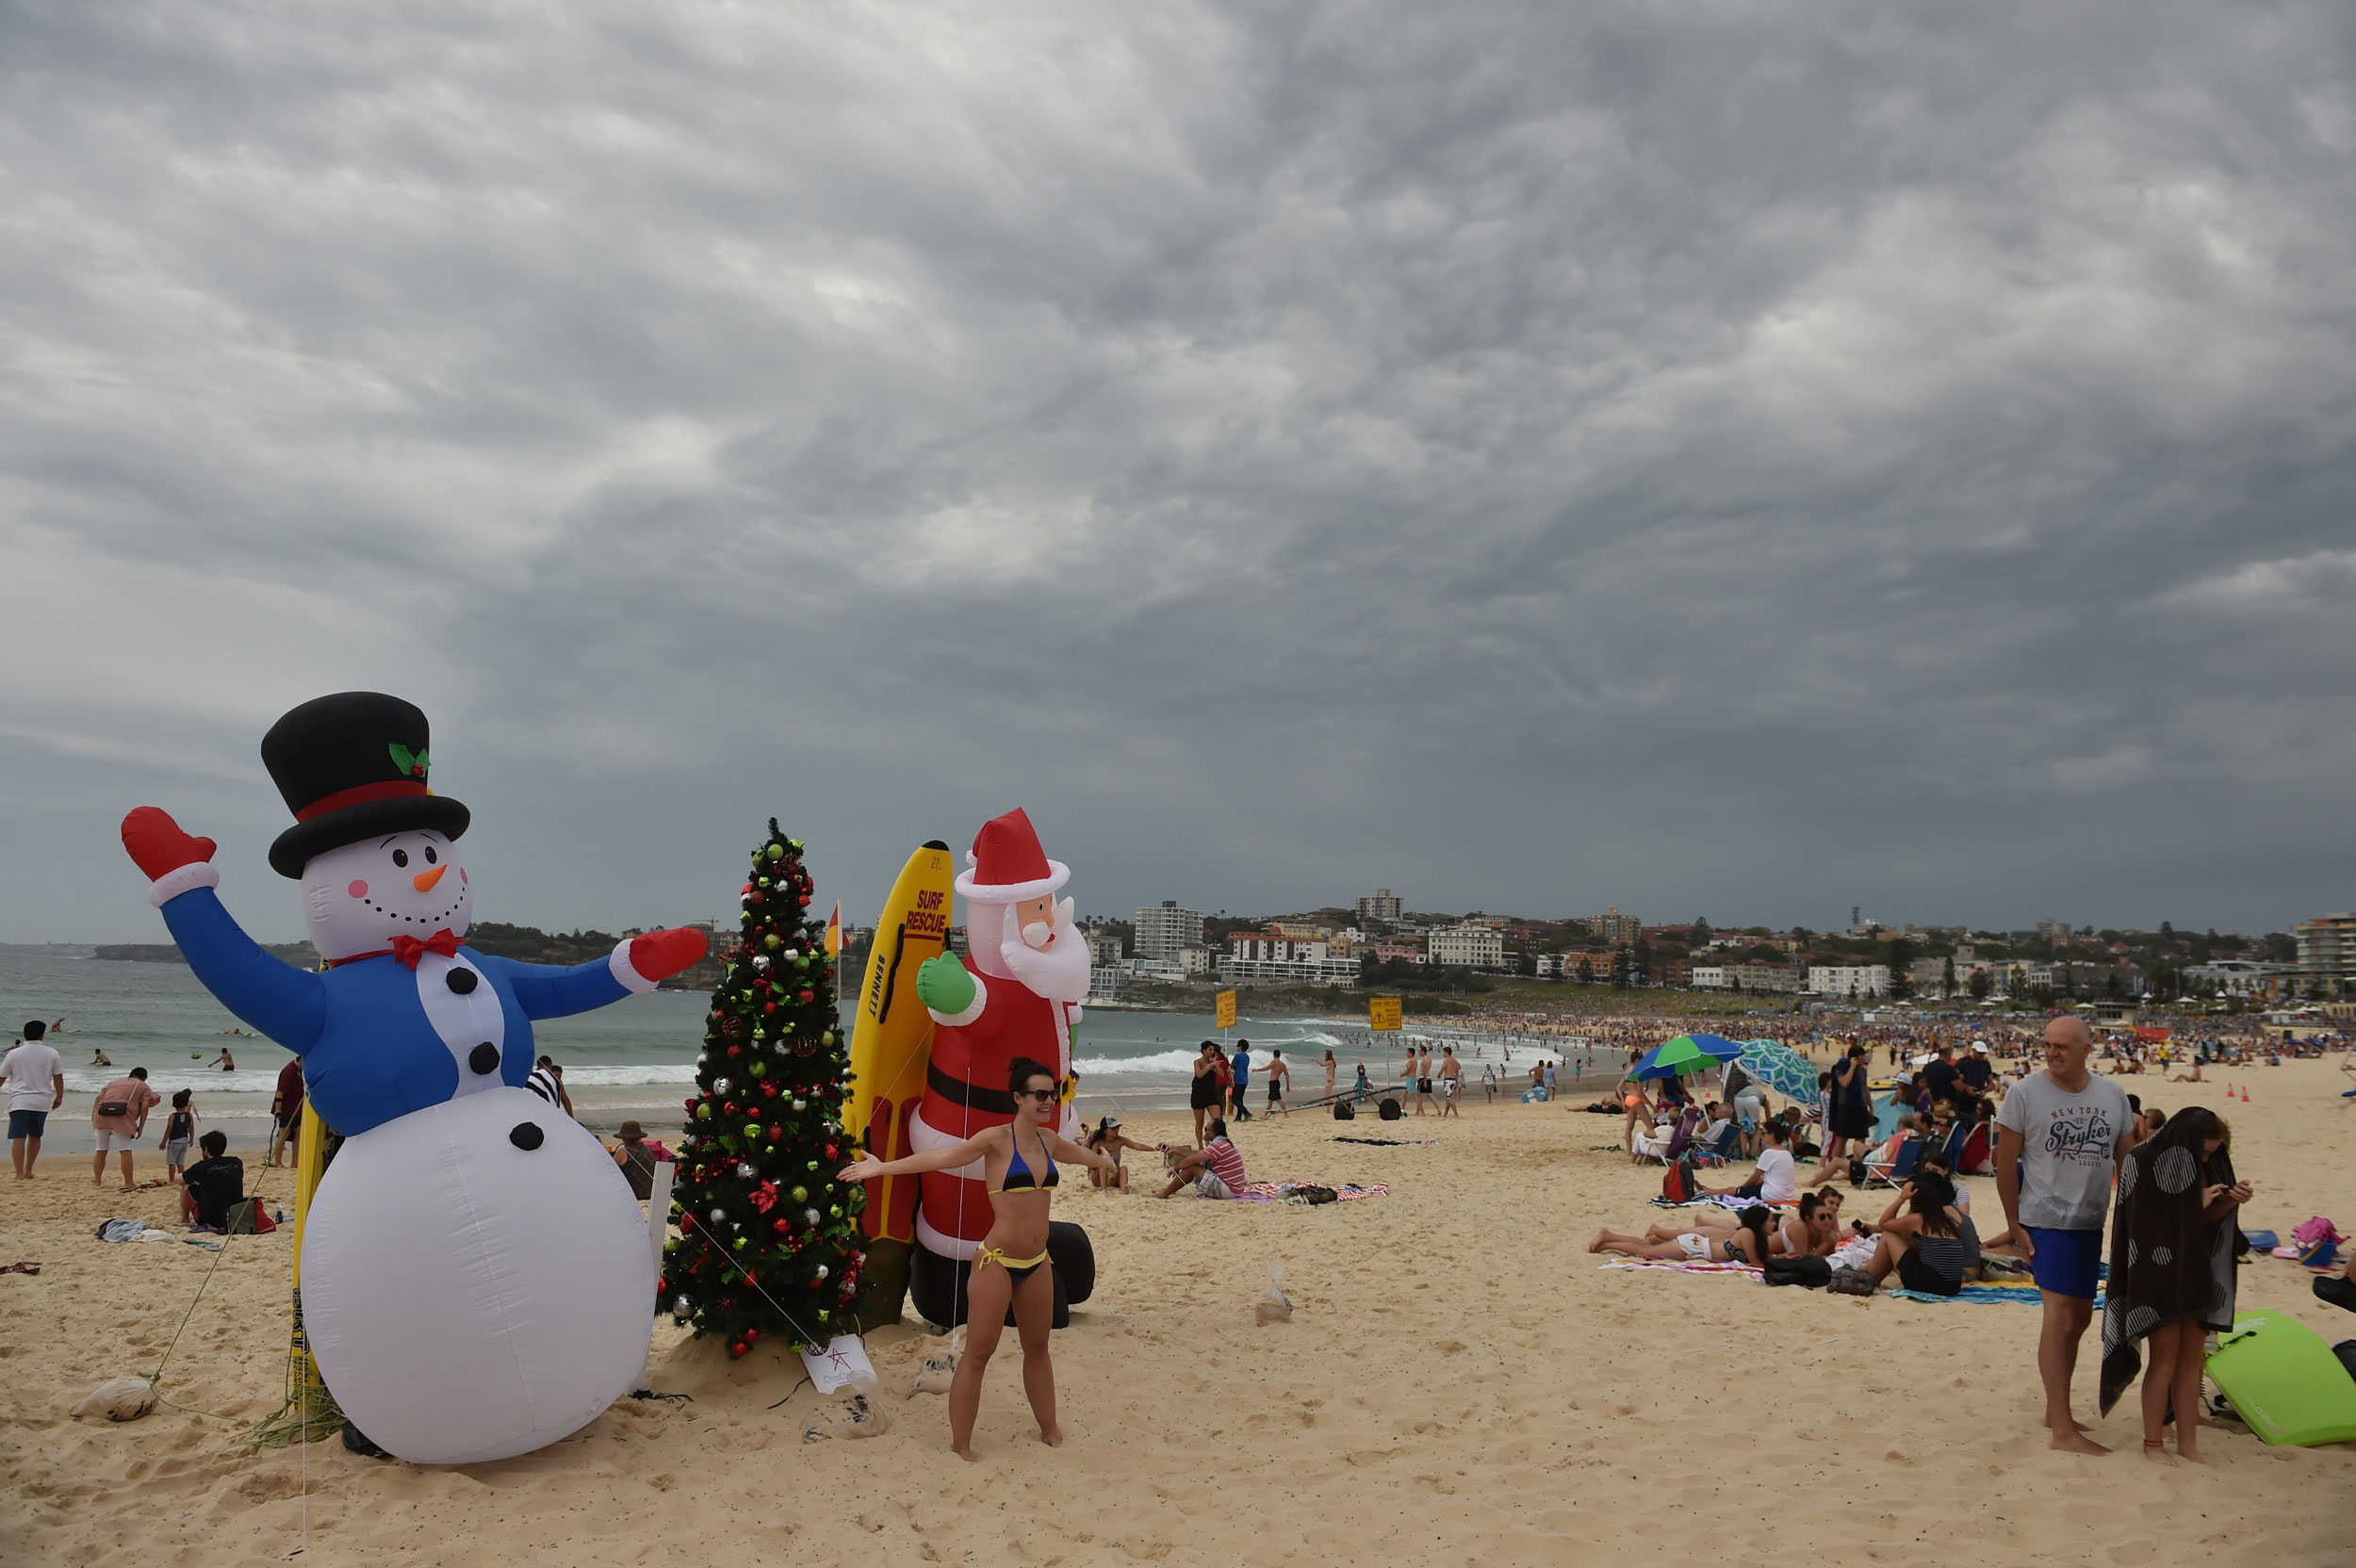 Visitors take photos in front of an inflatable snow man and Santa Claus on Bondi Beach on Christmas Day on Dec. 25, 2014.